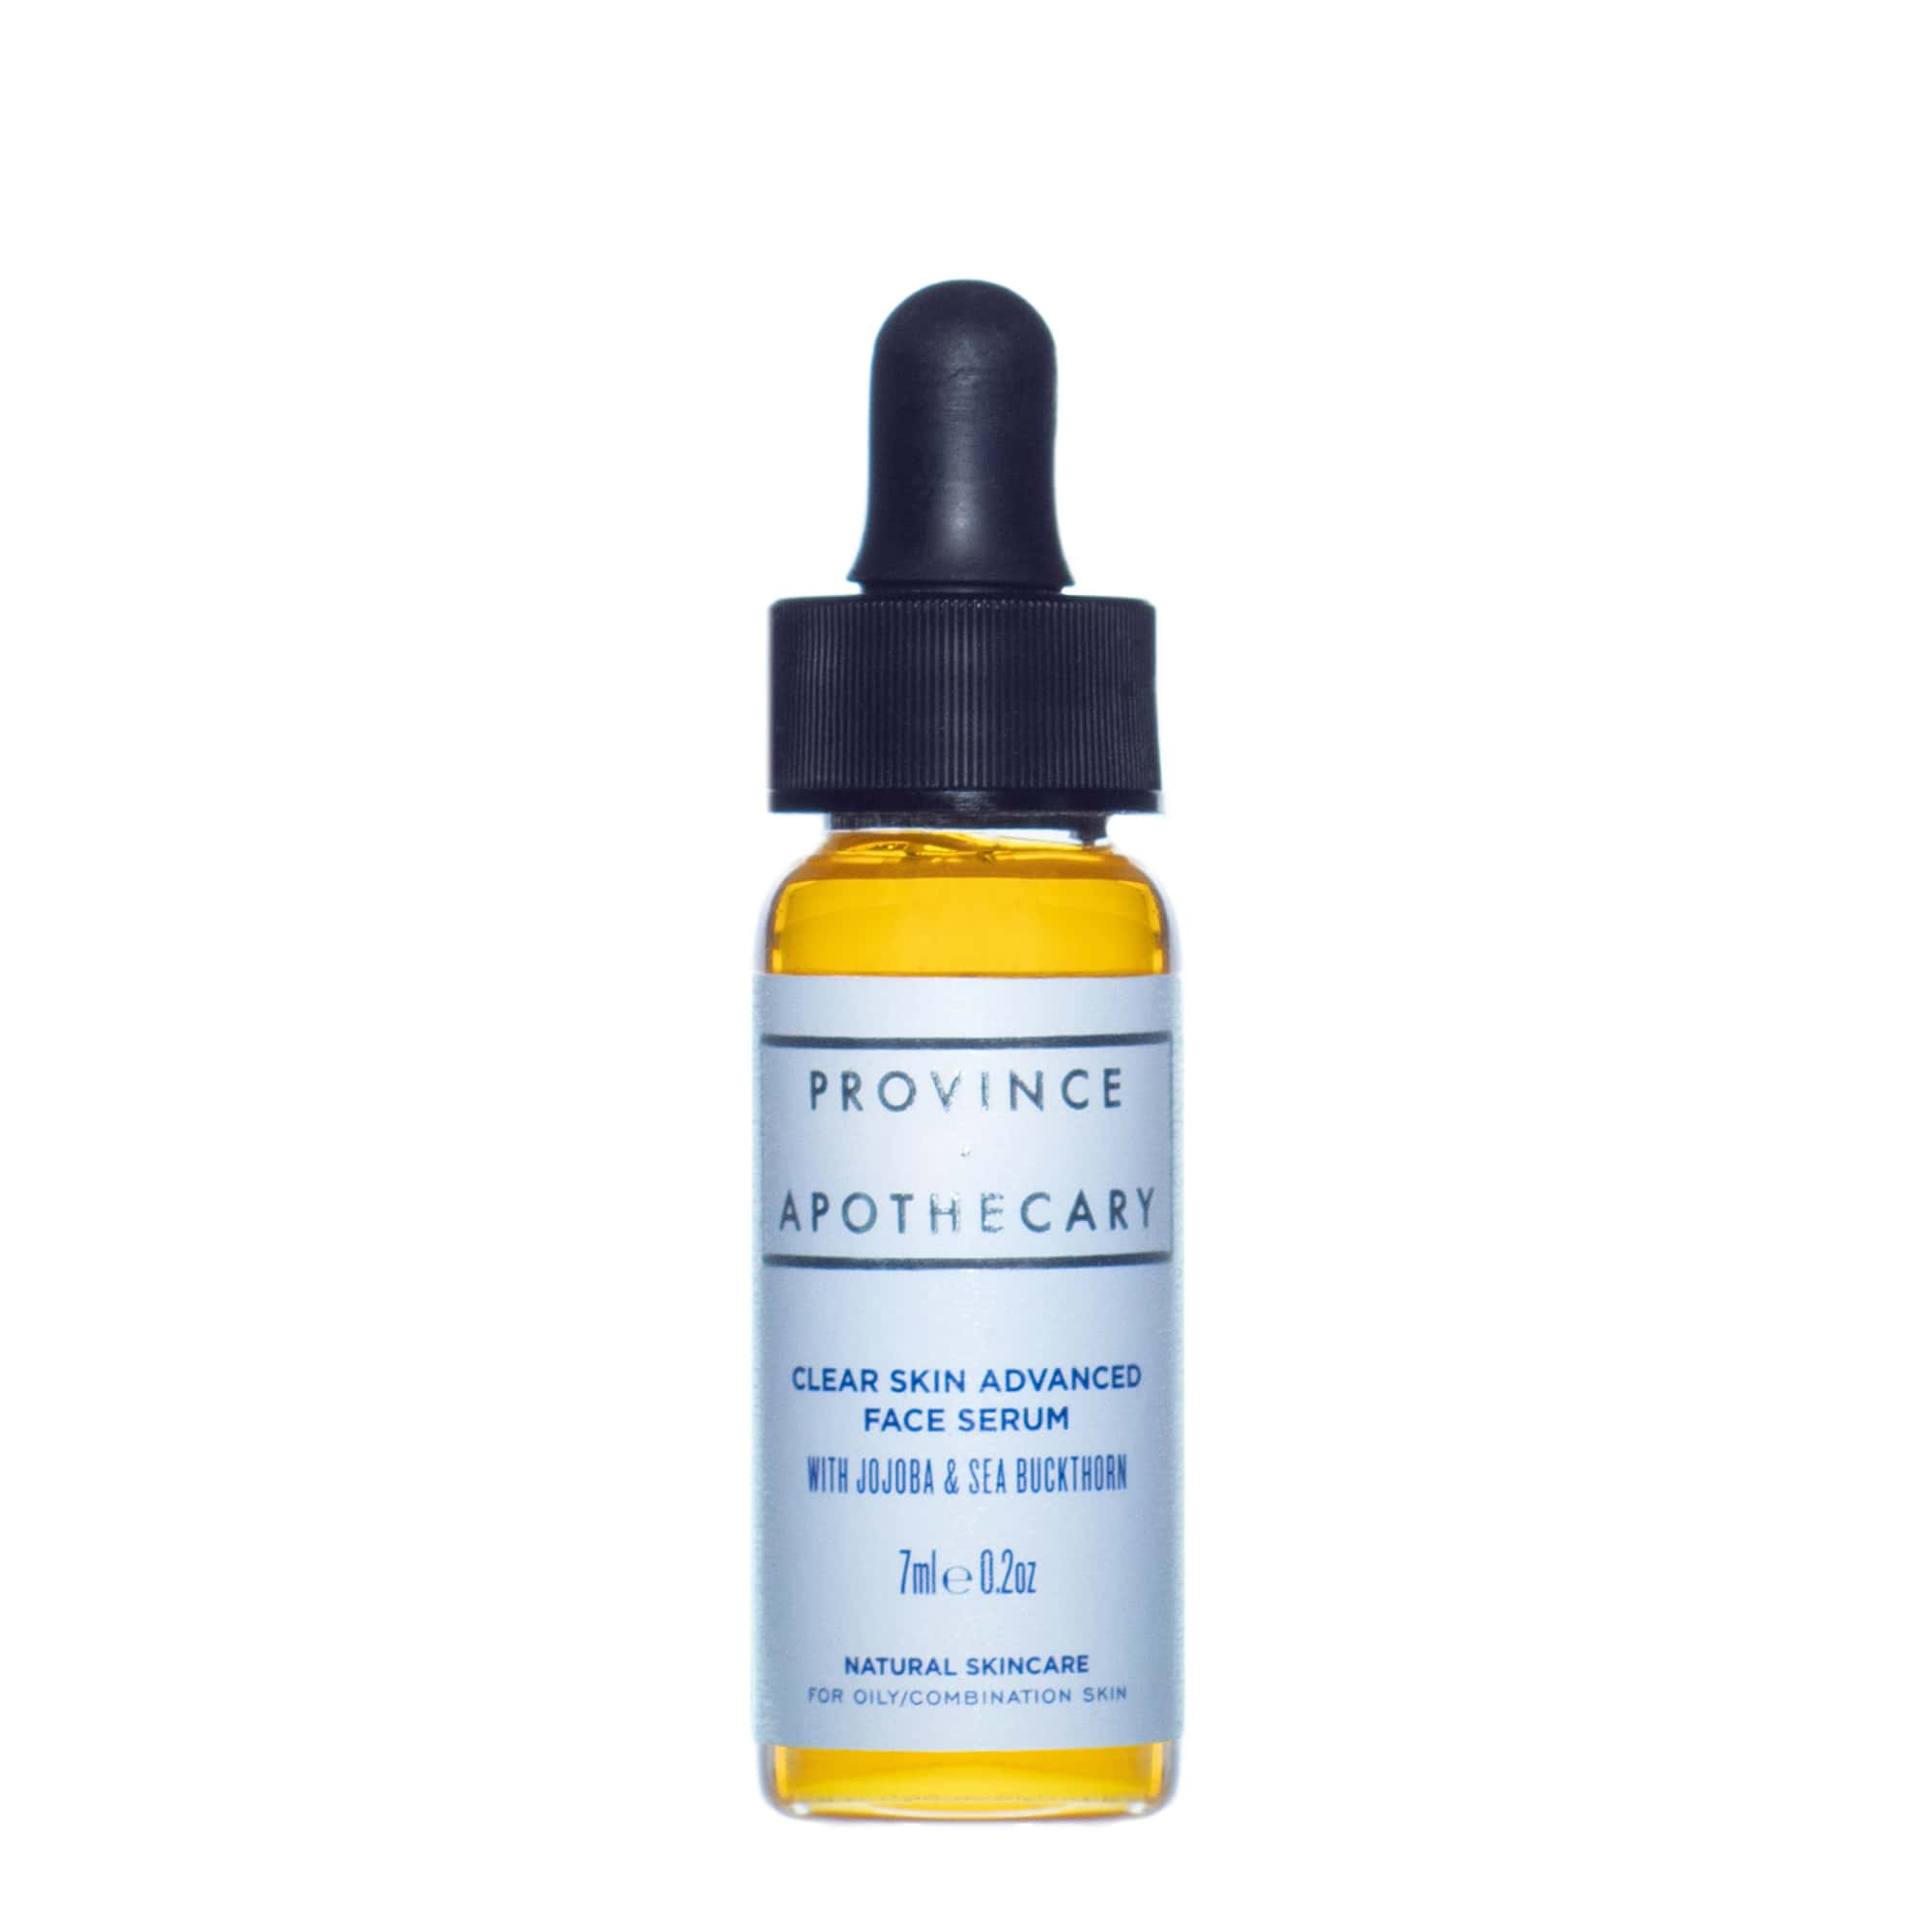 Clear Skin Advanced Face Serum - Cladproper.com